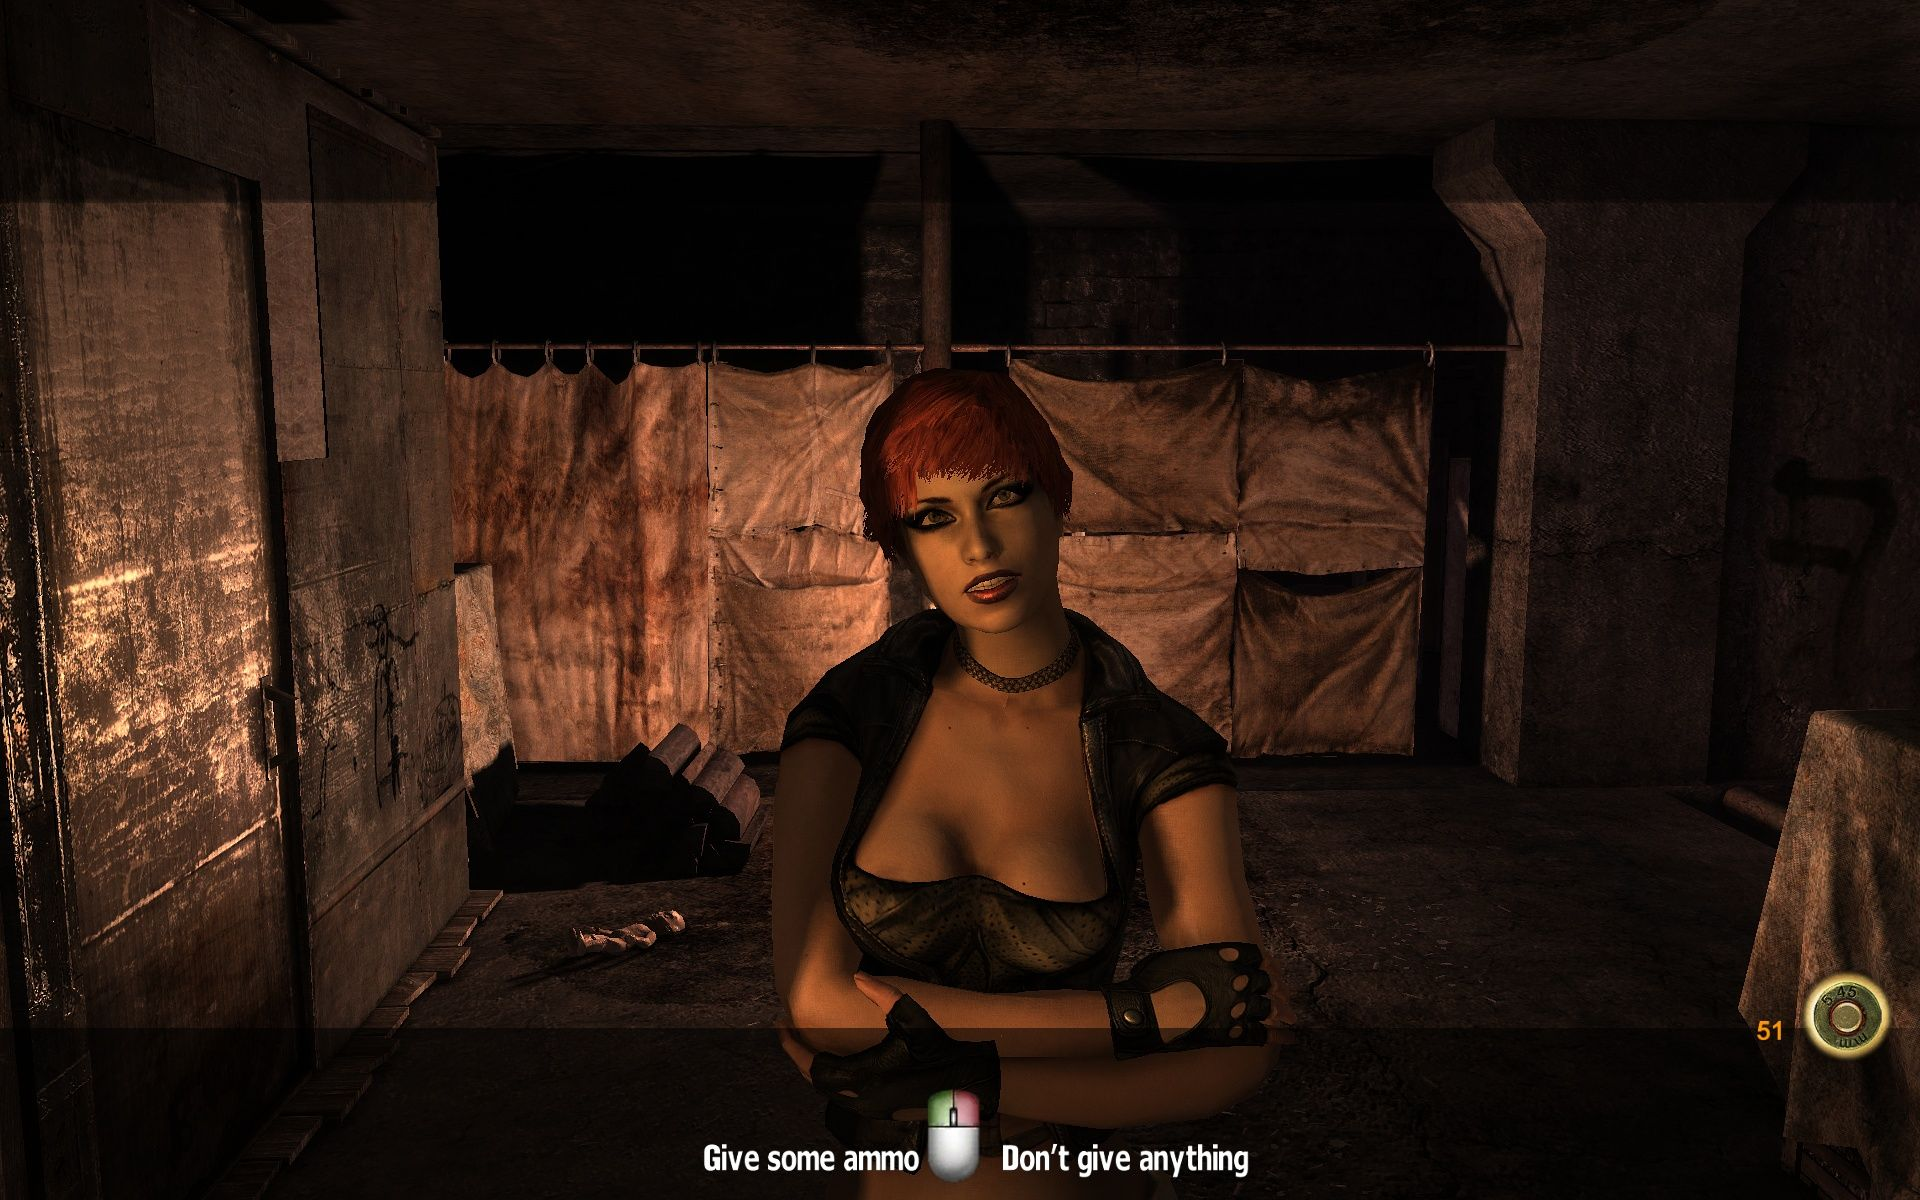 Metro 2033 Windows Two professions not even a nuclear fallout can kill: vendor and prostitution.